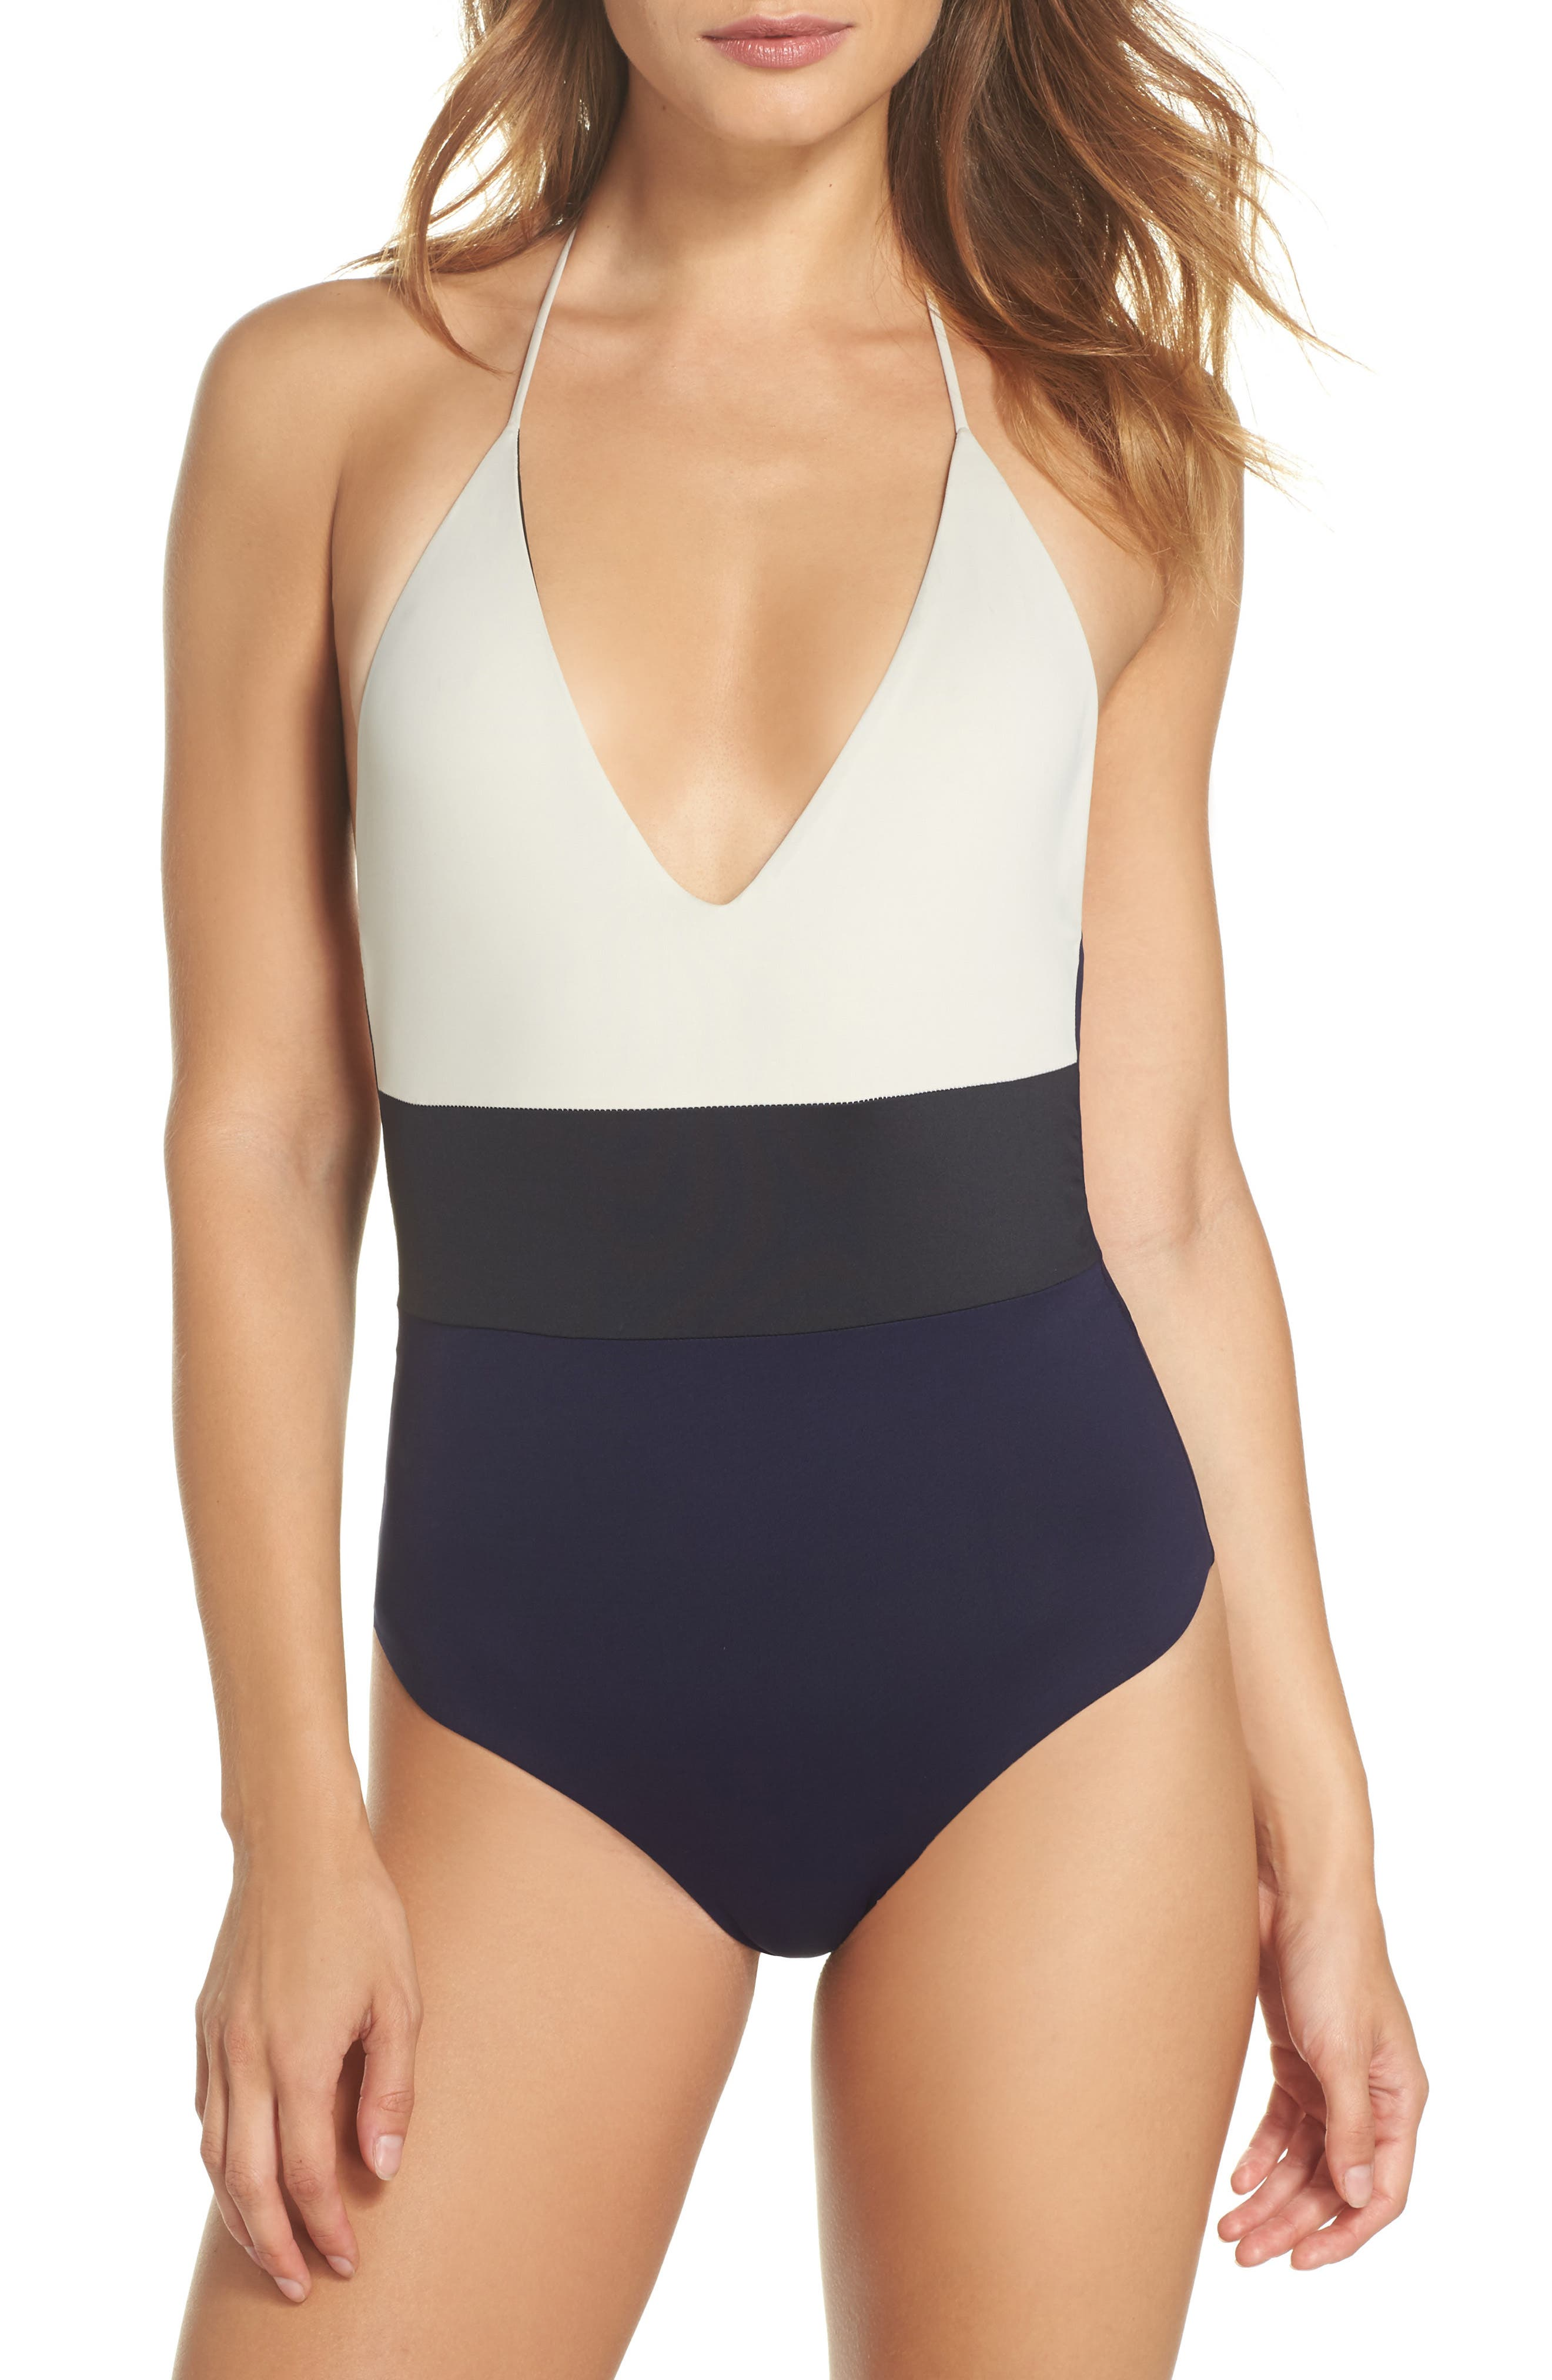 Chase One-Piece Swimsuit,                             Main thumbnail 1, color,                             Evening Blue